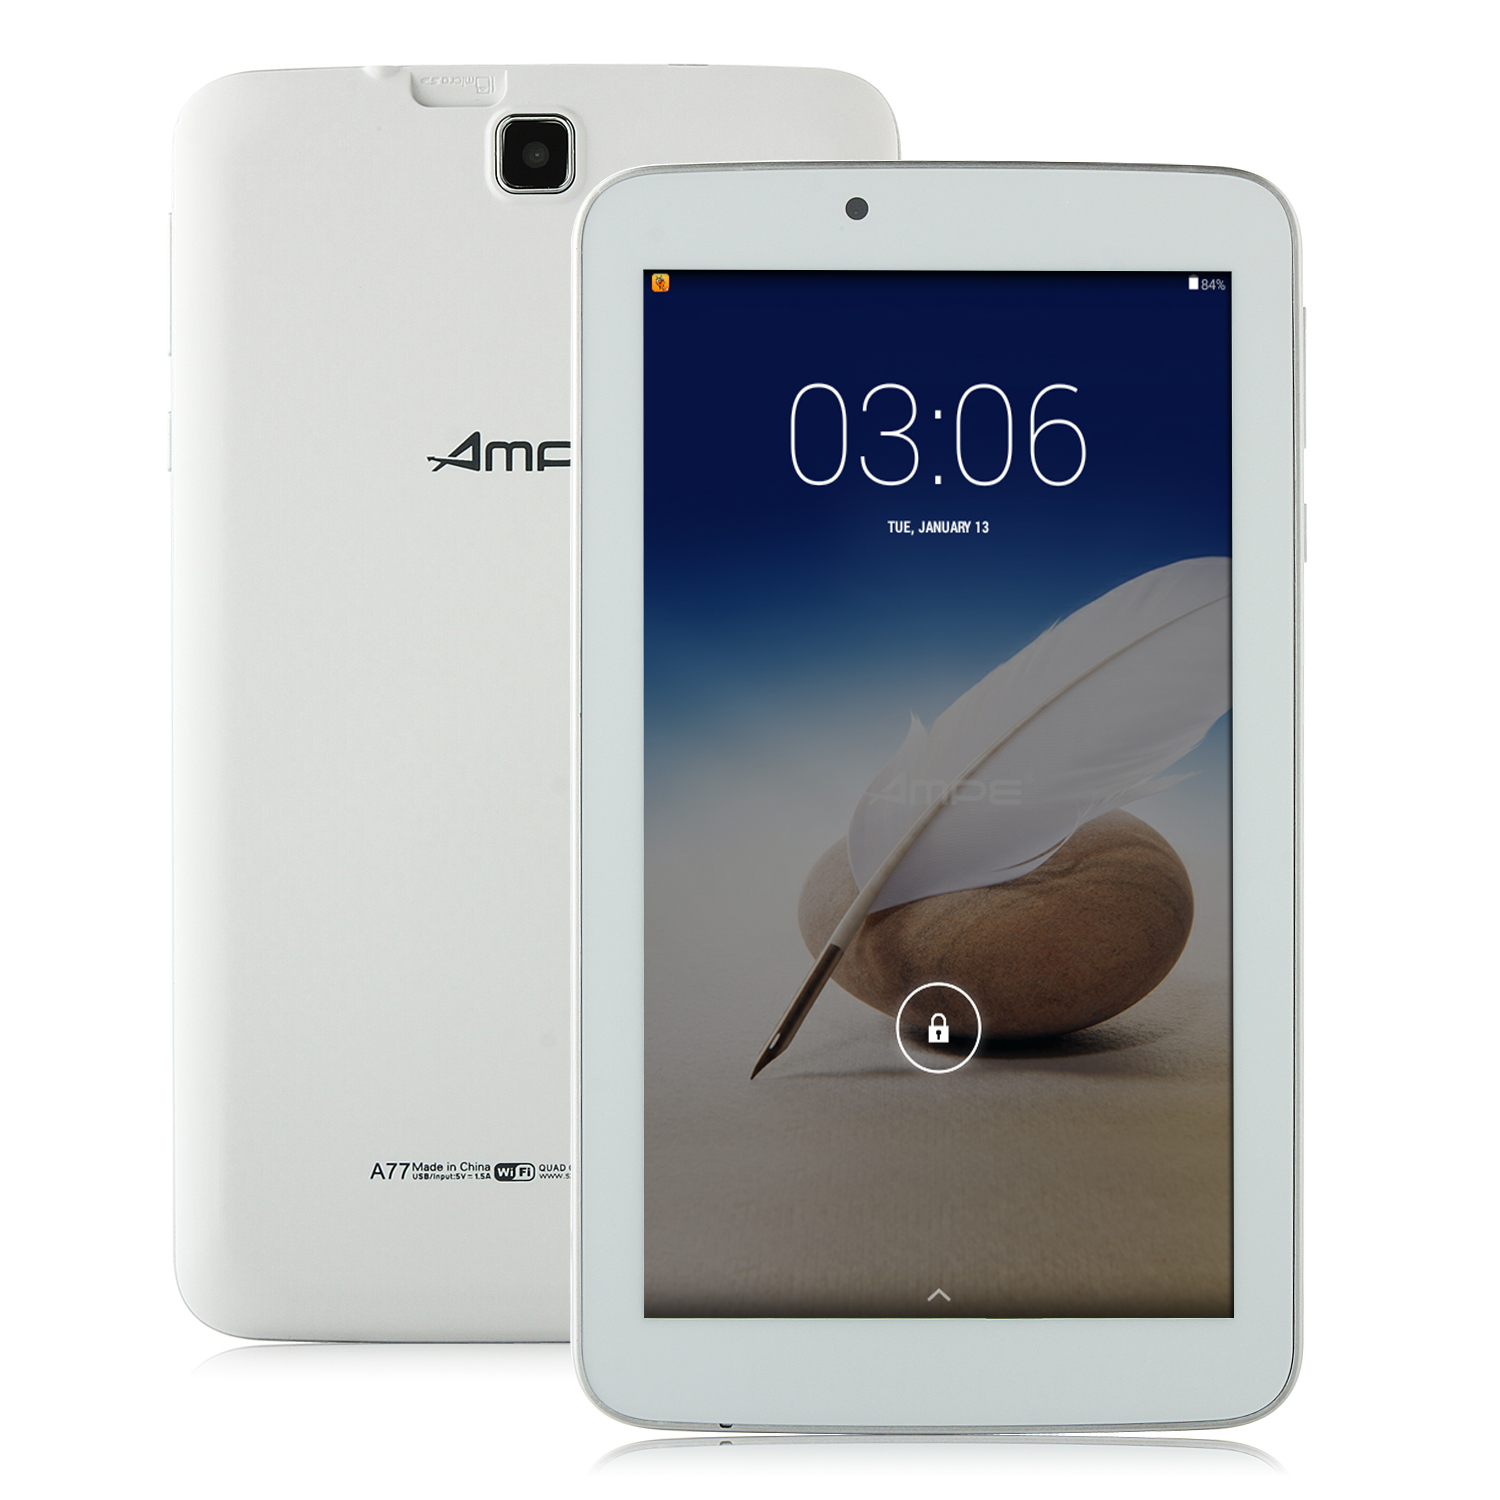 Ampe A77 Quad Core Tablet PC Allwinner A33 7.0 Inch Android 4.4 8GB White